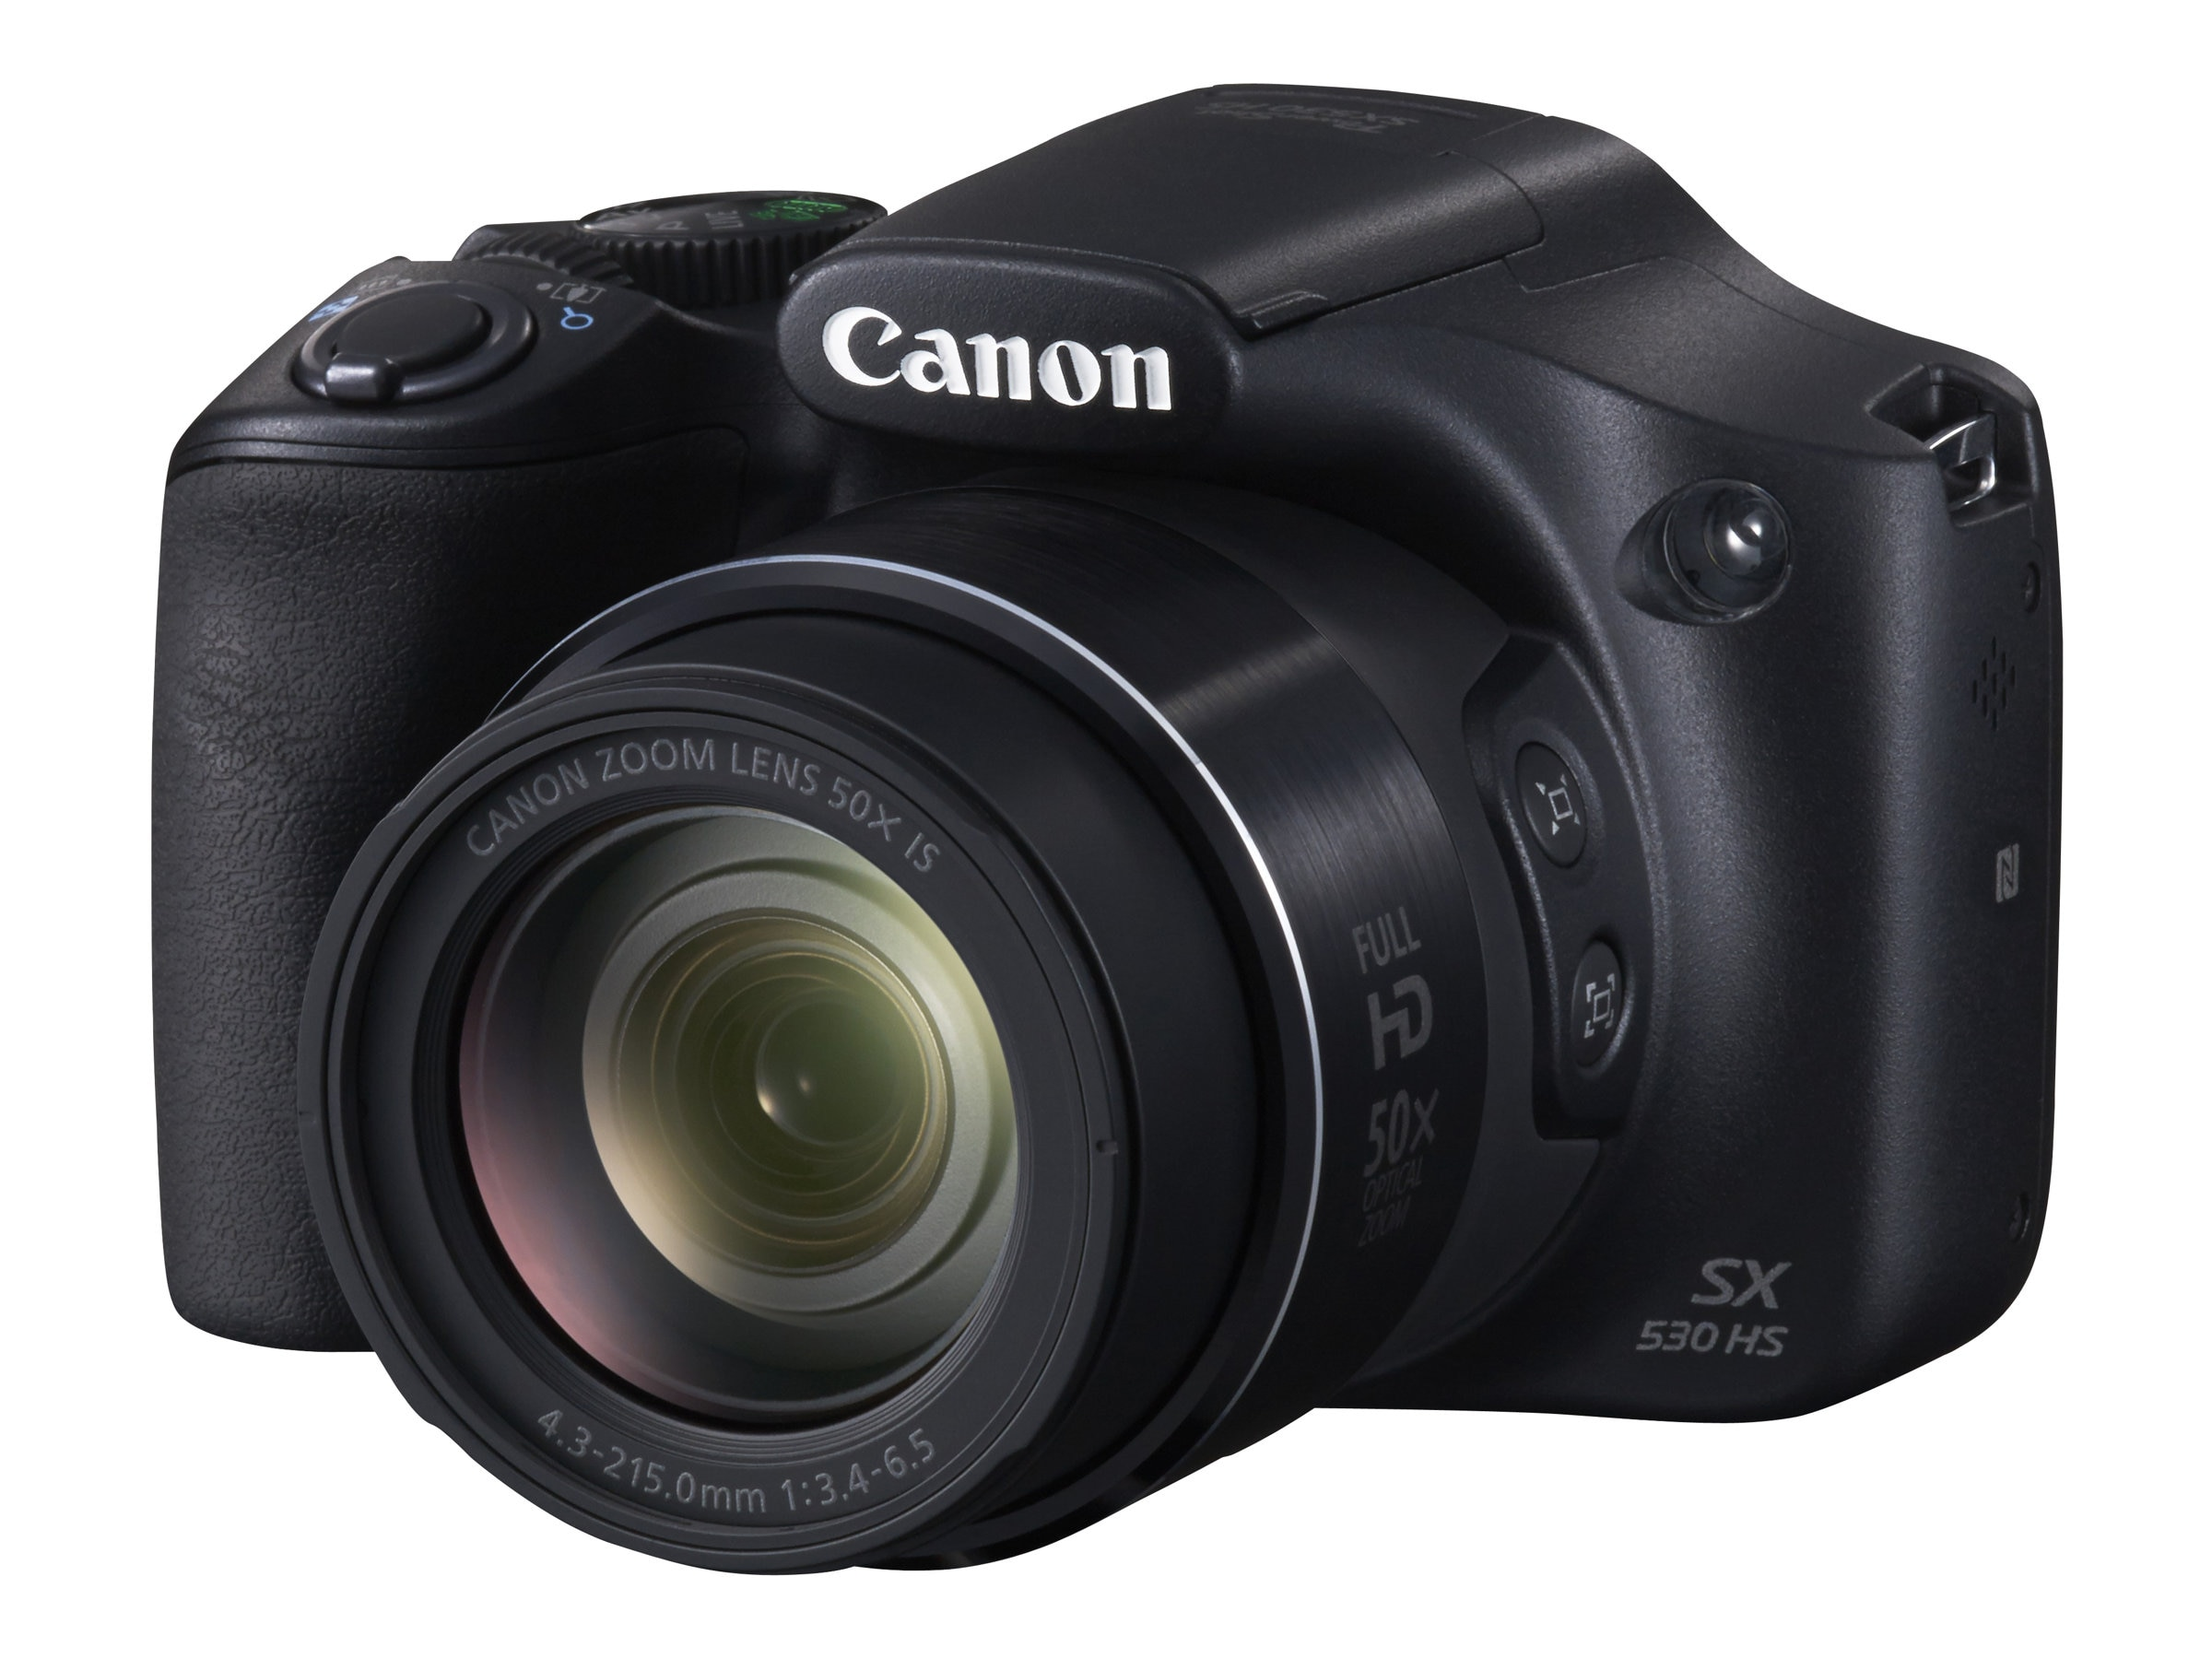 Canon PowerShot SX530 HS Camera, 16MP, 50x Zoom, Black